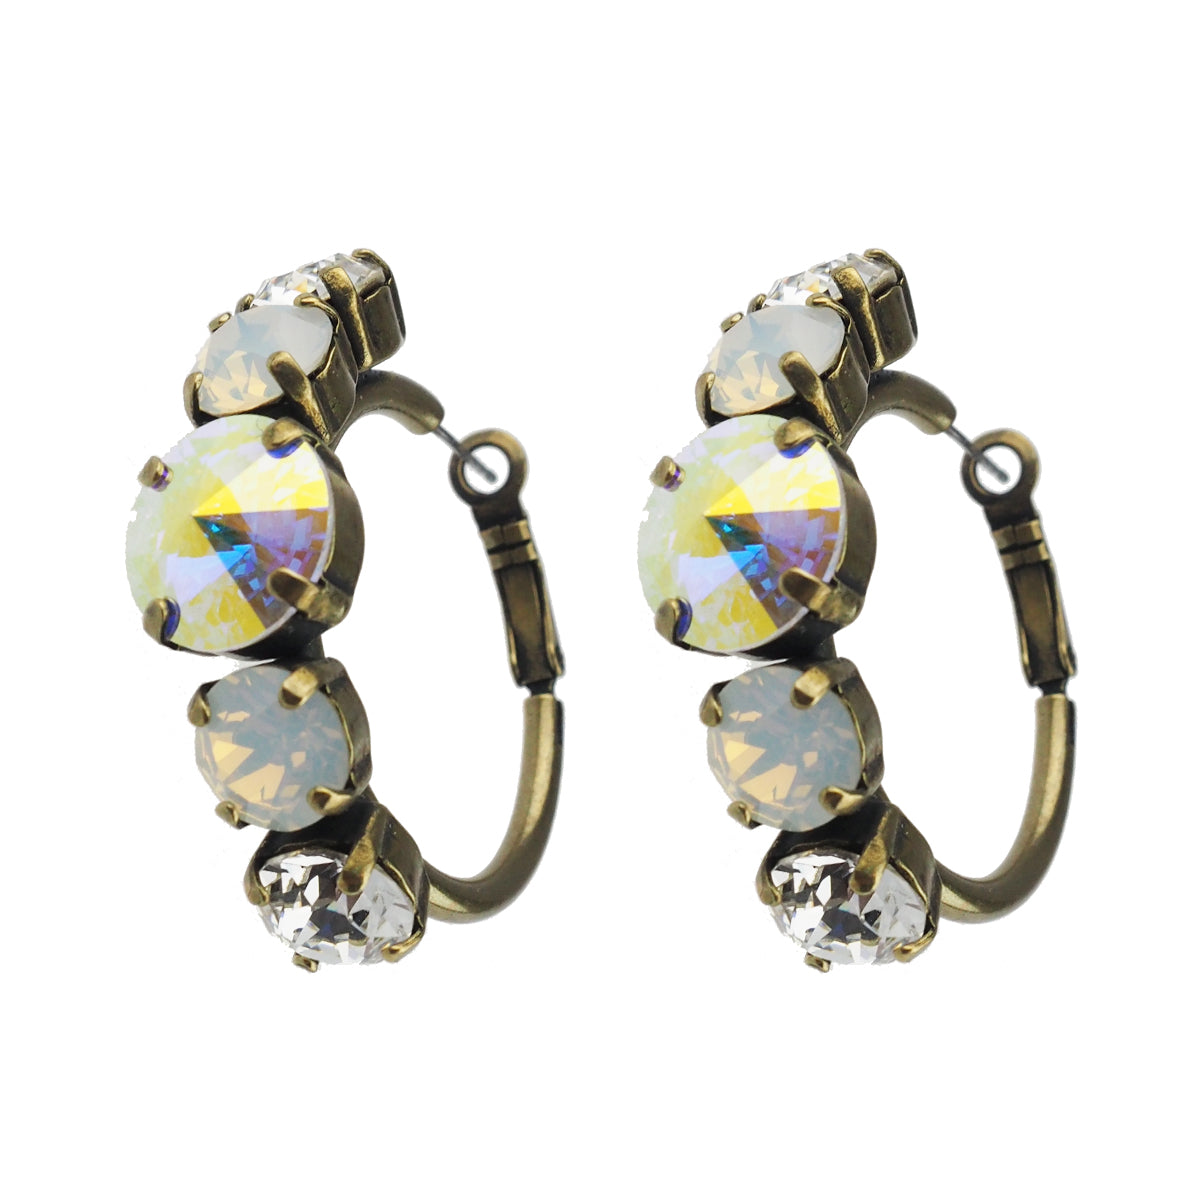 Head Over Heels Earrings - Crystal AB